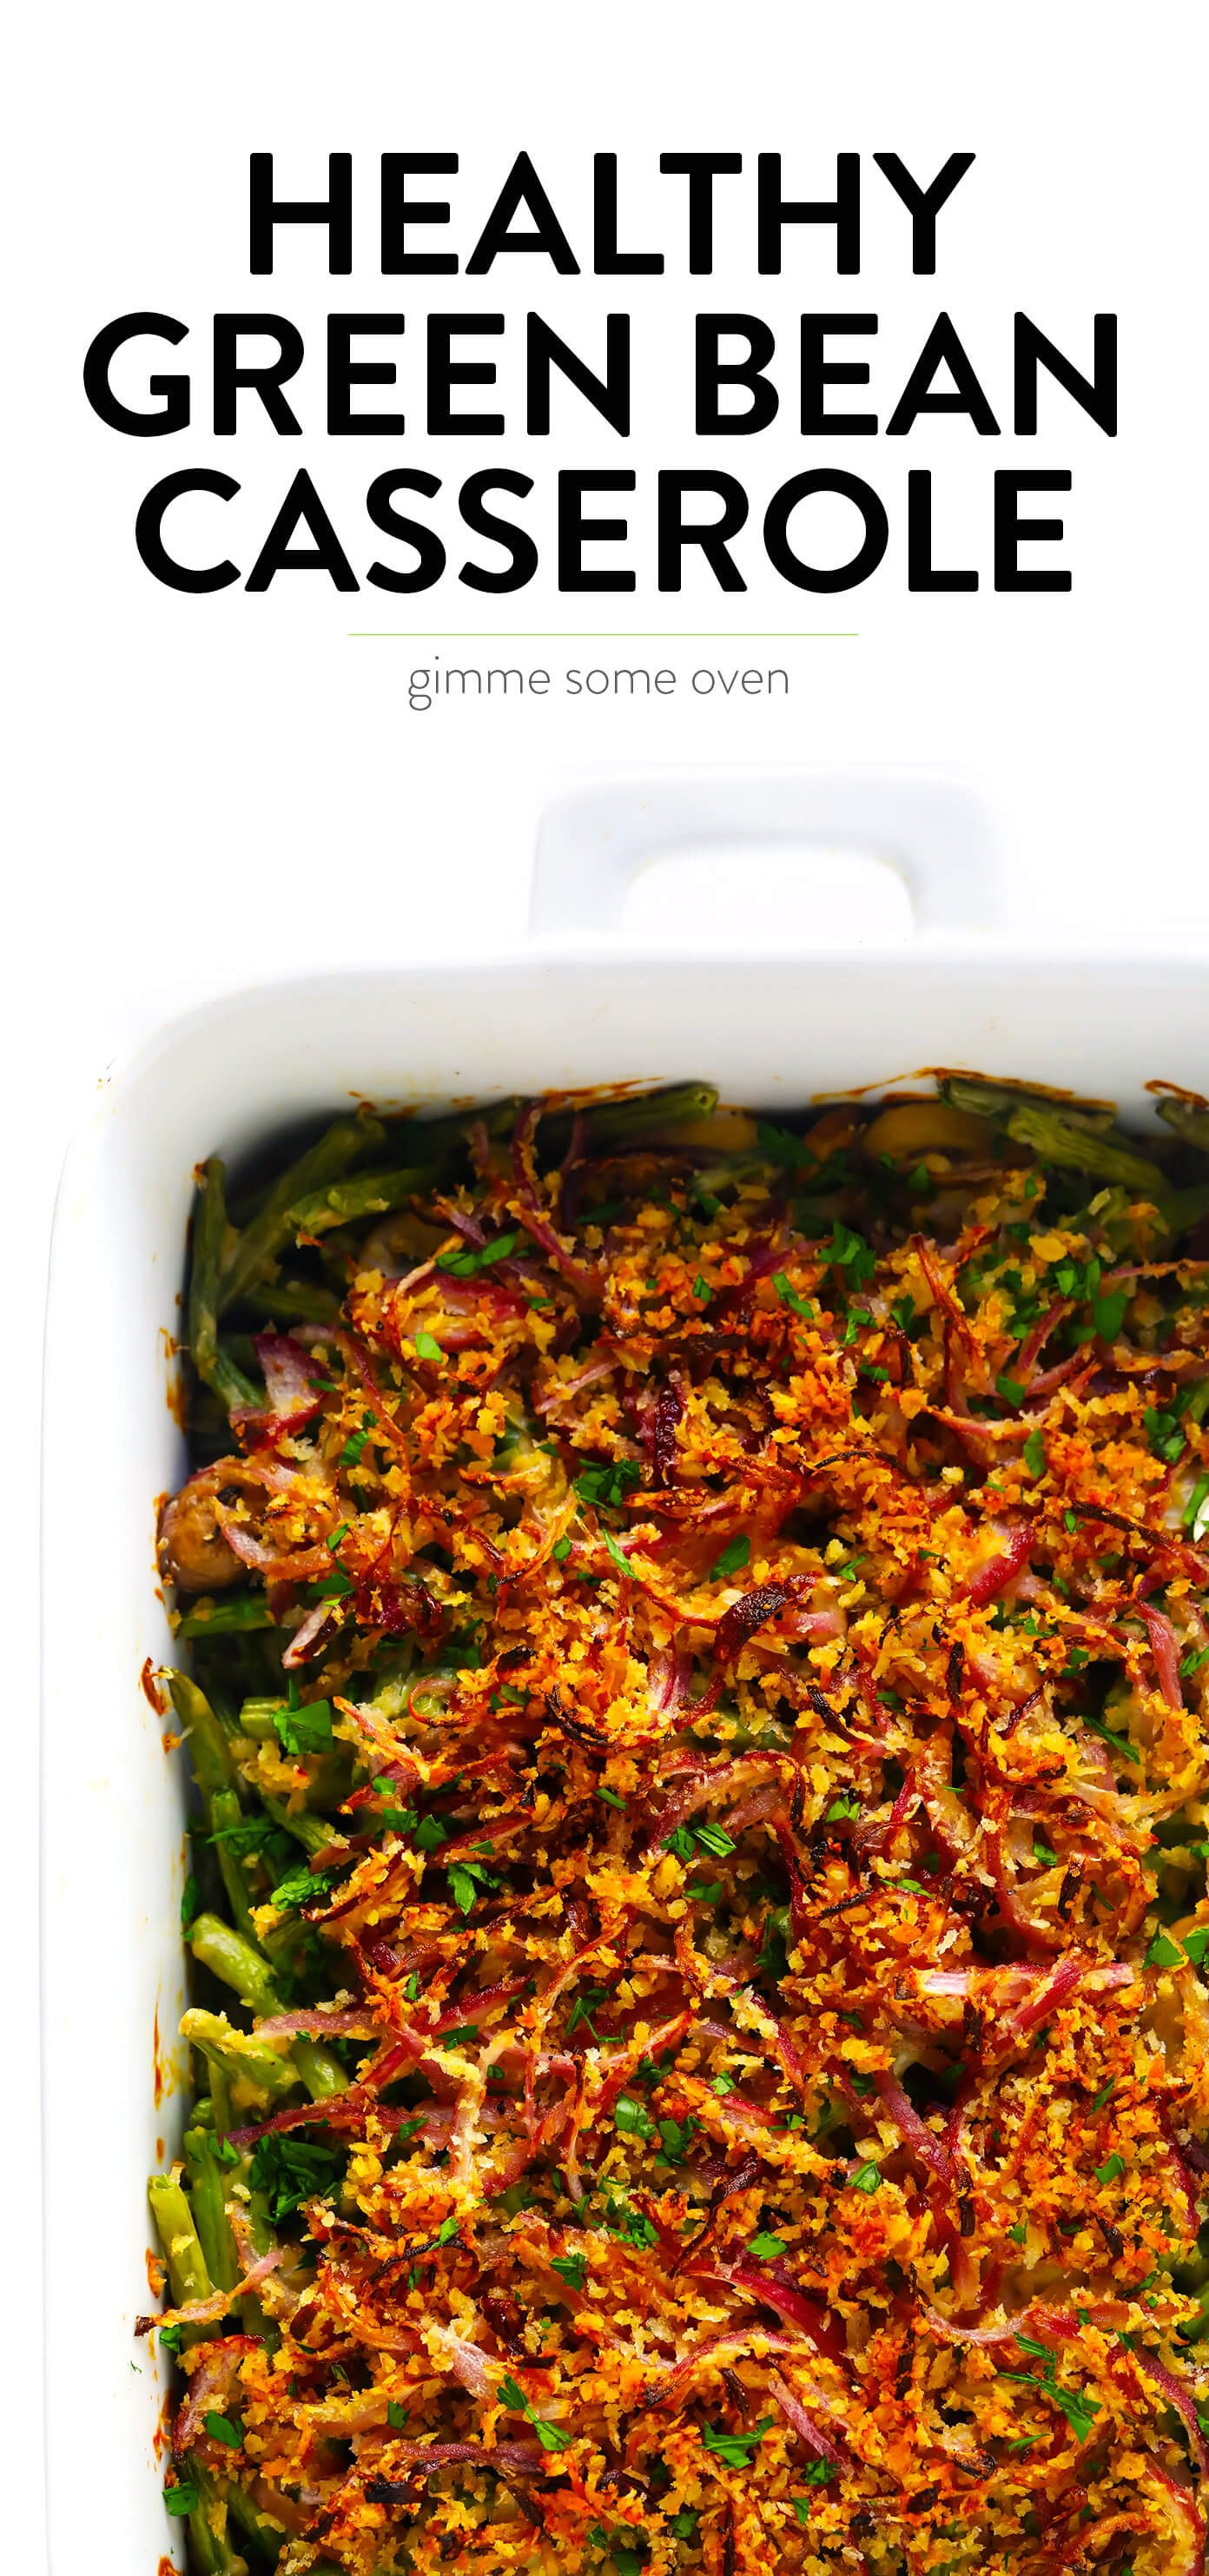 Healthy Green Bean Casserole from Gimme Some Oven